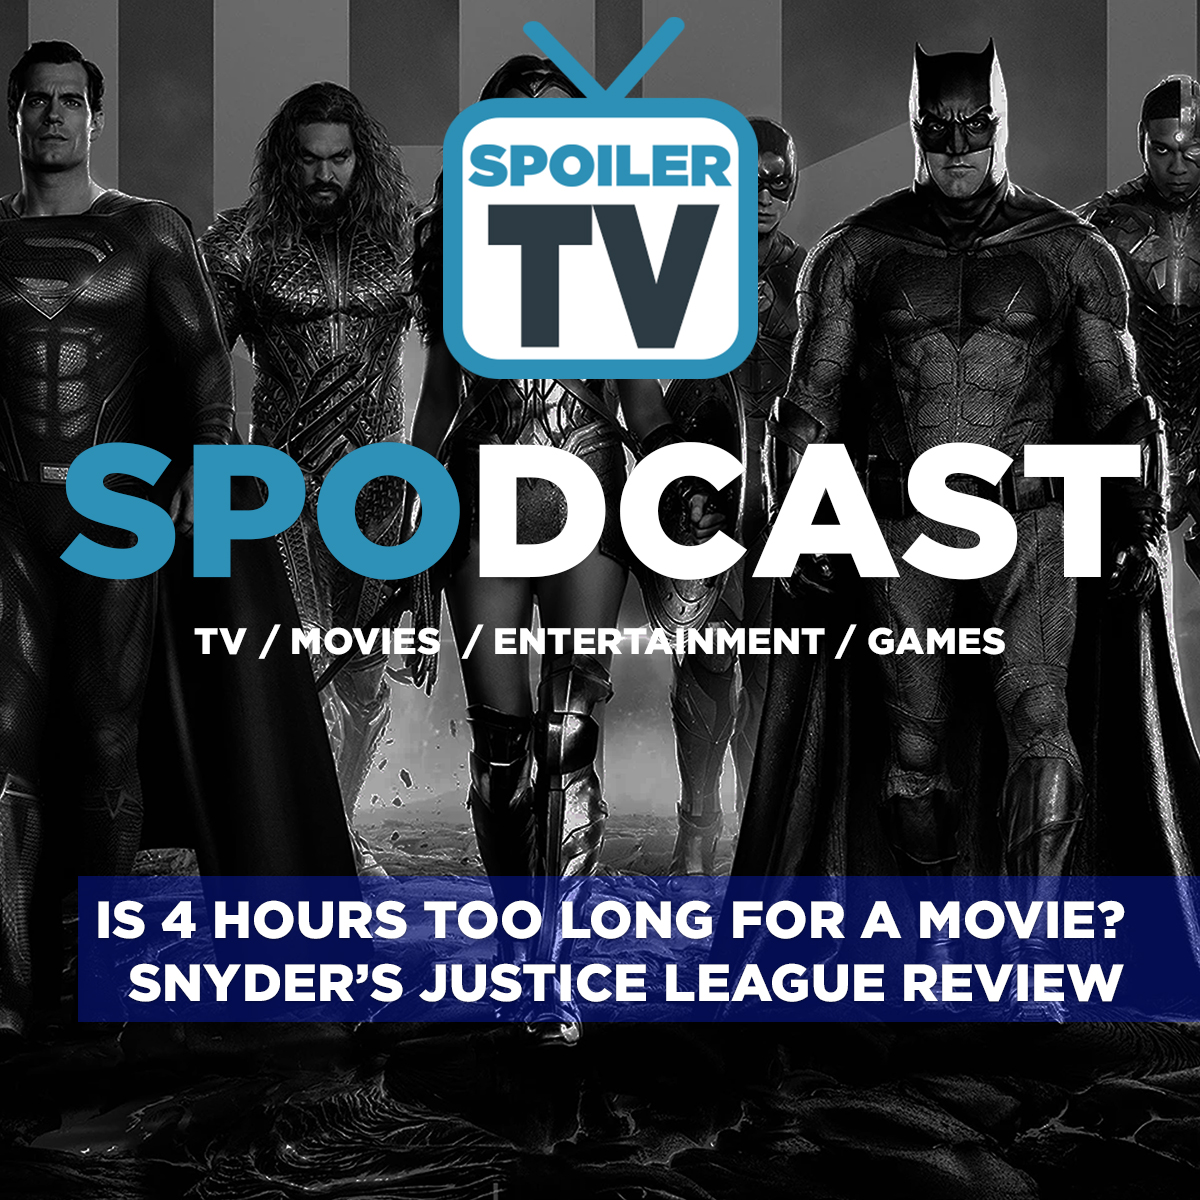 Is 4 hours too long for a movie? Snyder's Justice League Review   Spodcast 09   SPOILERTV